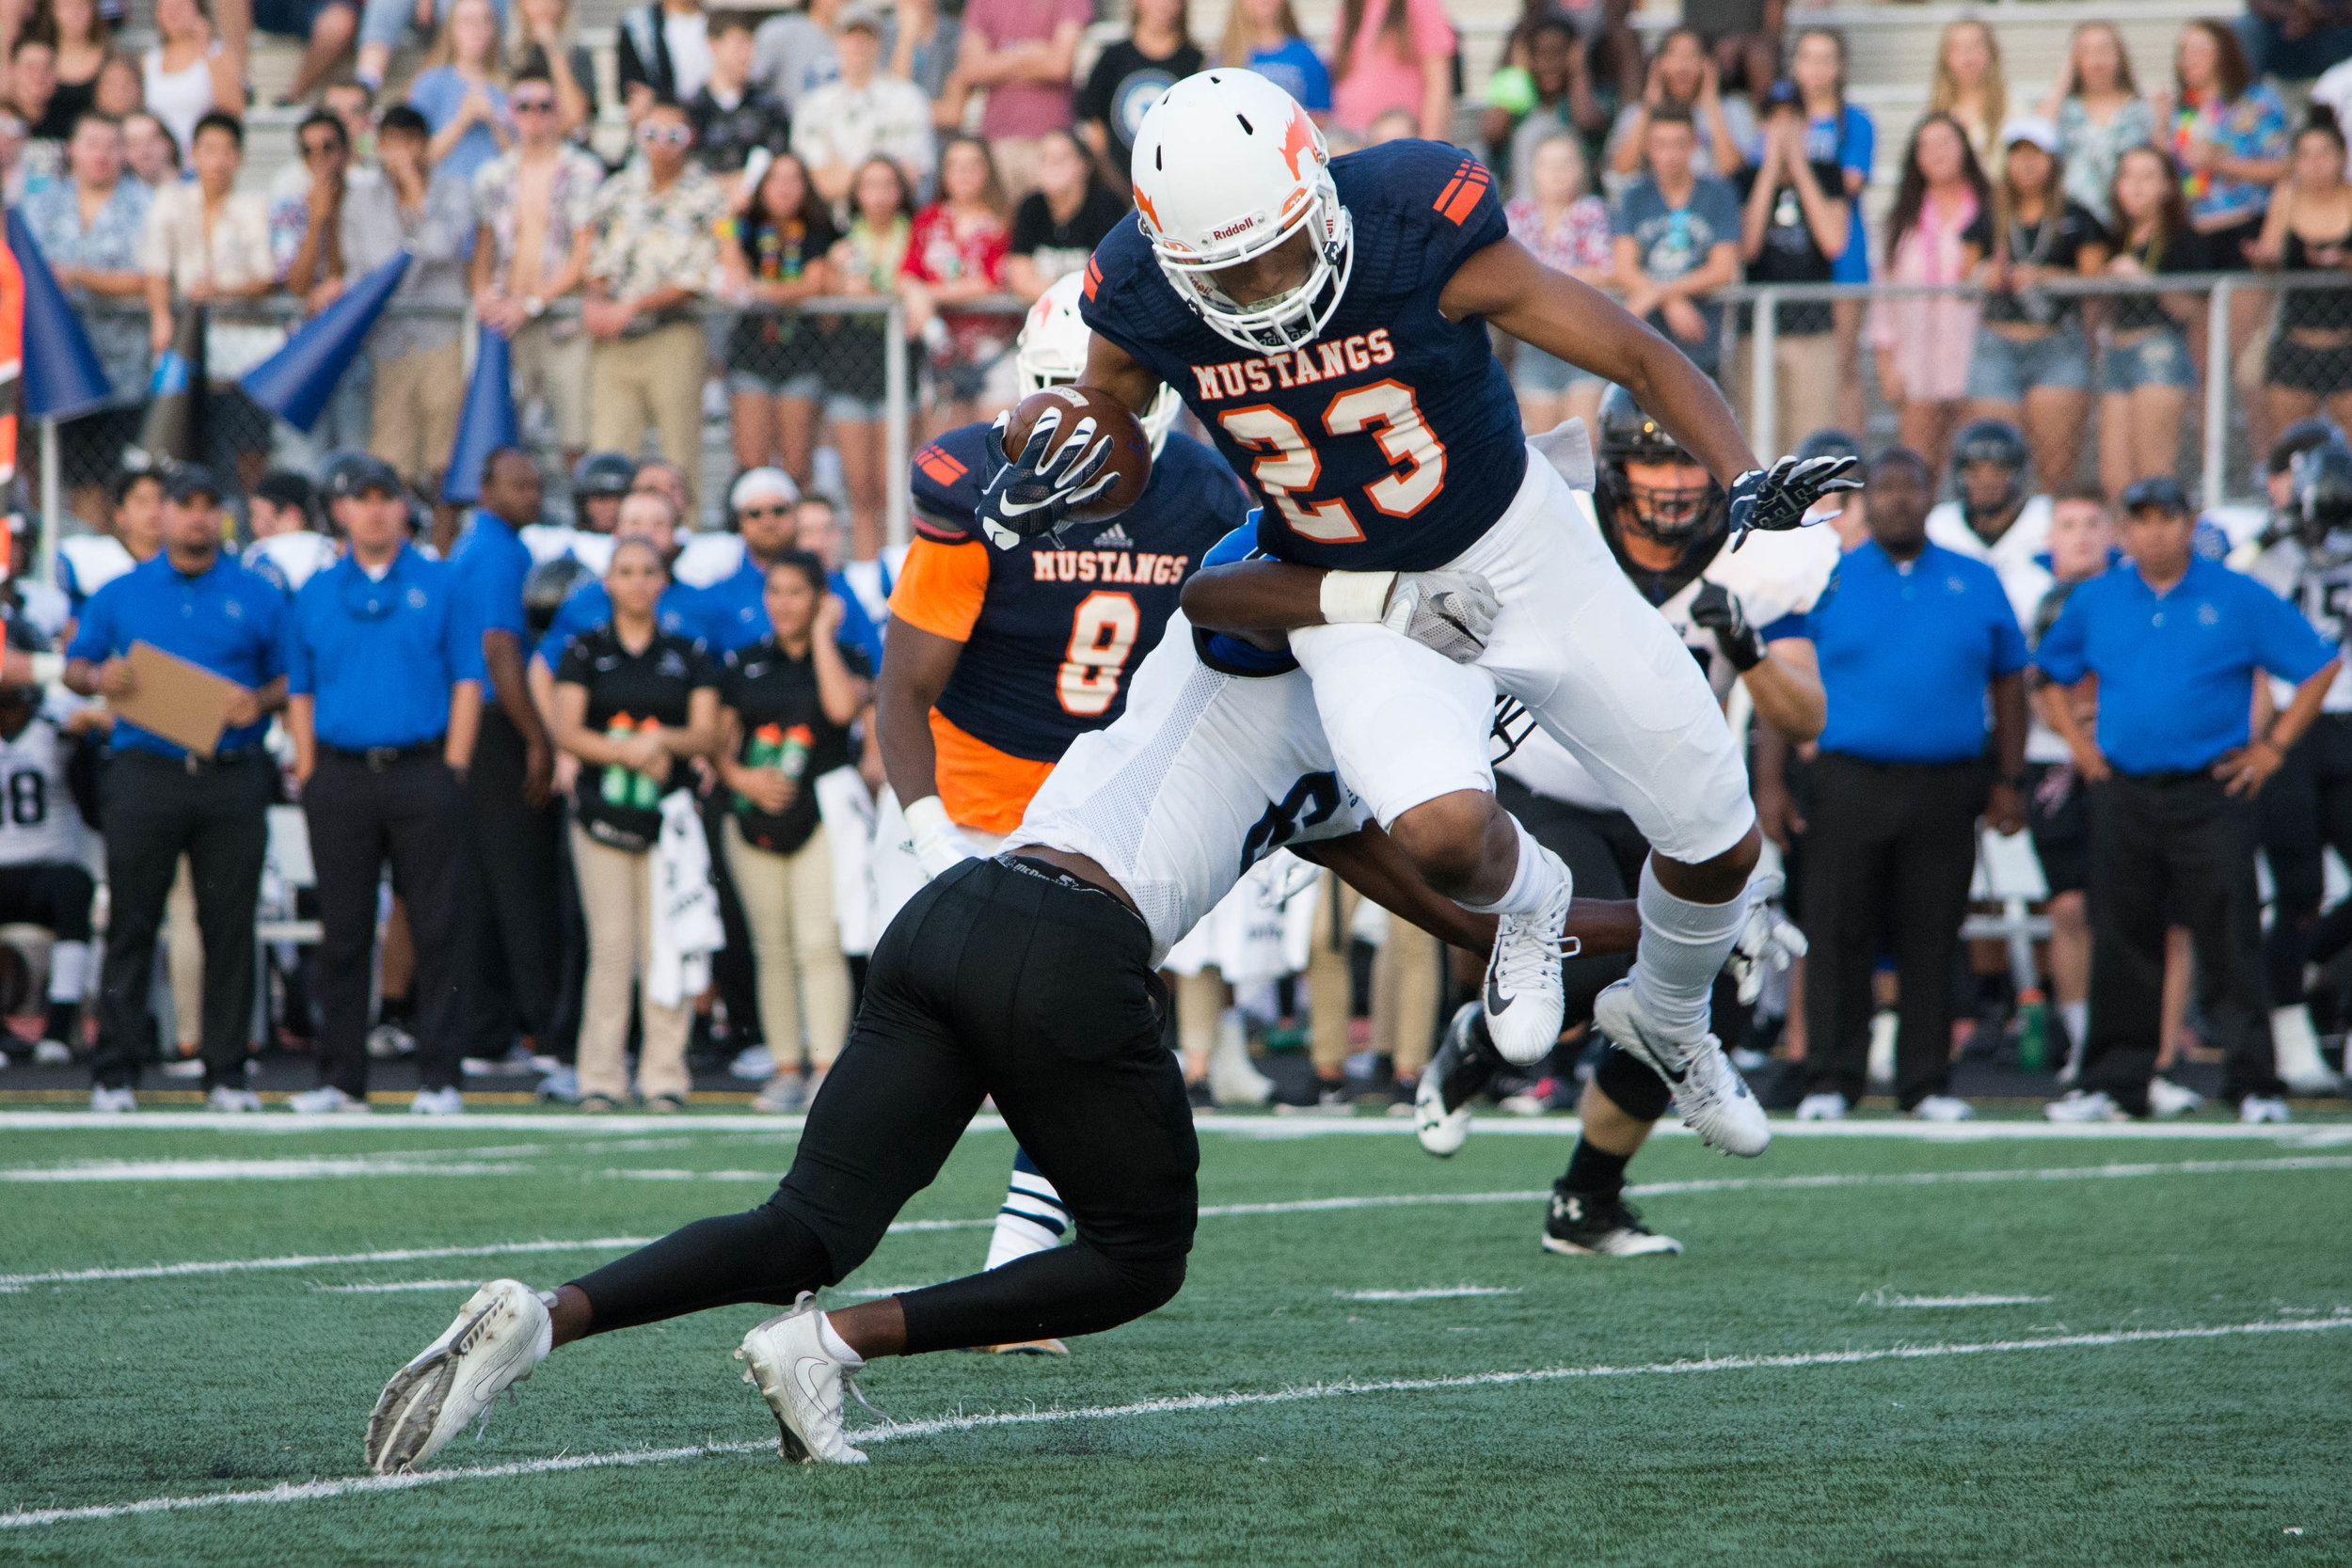 Sachse High School's Isaiah Humphries breaks a tackle after a pick.